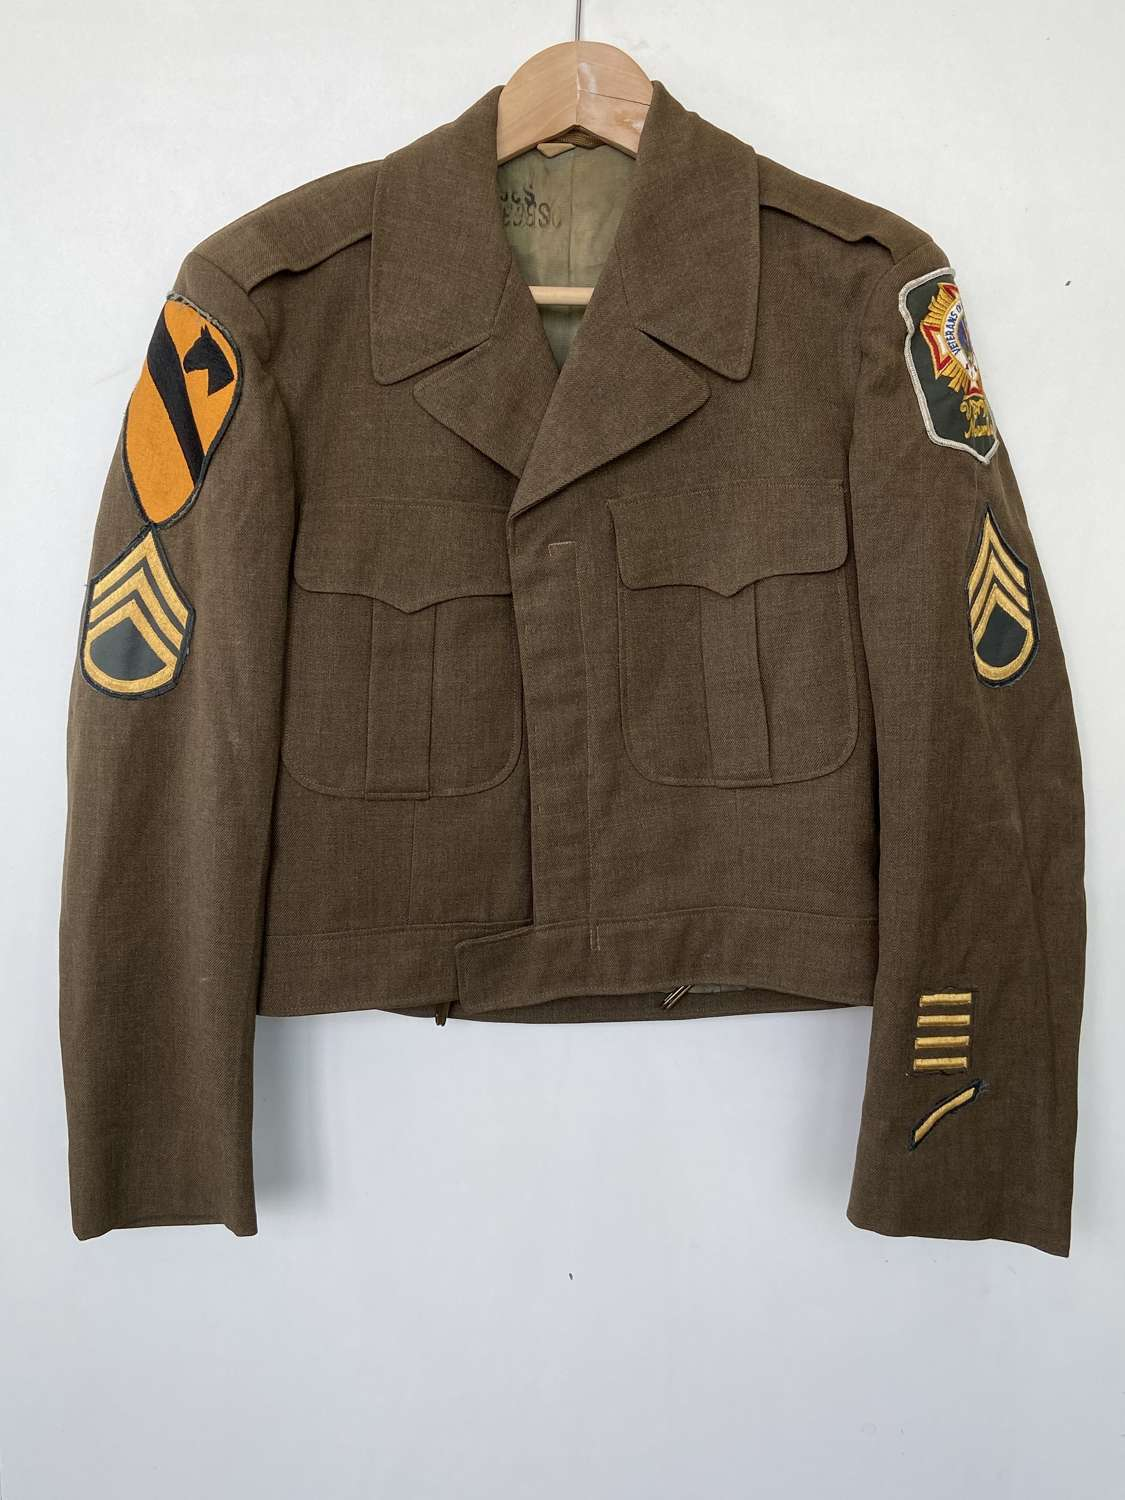 Post WW2 M-1950 United States Army 1st Cavalry Wool Jacket